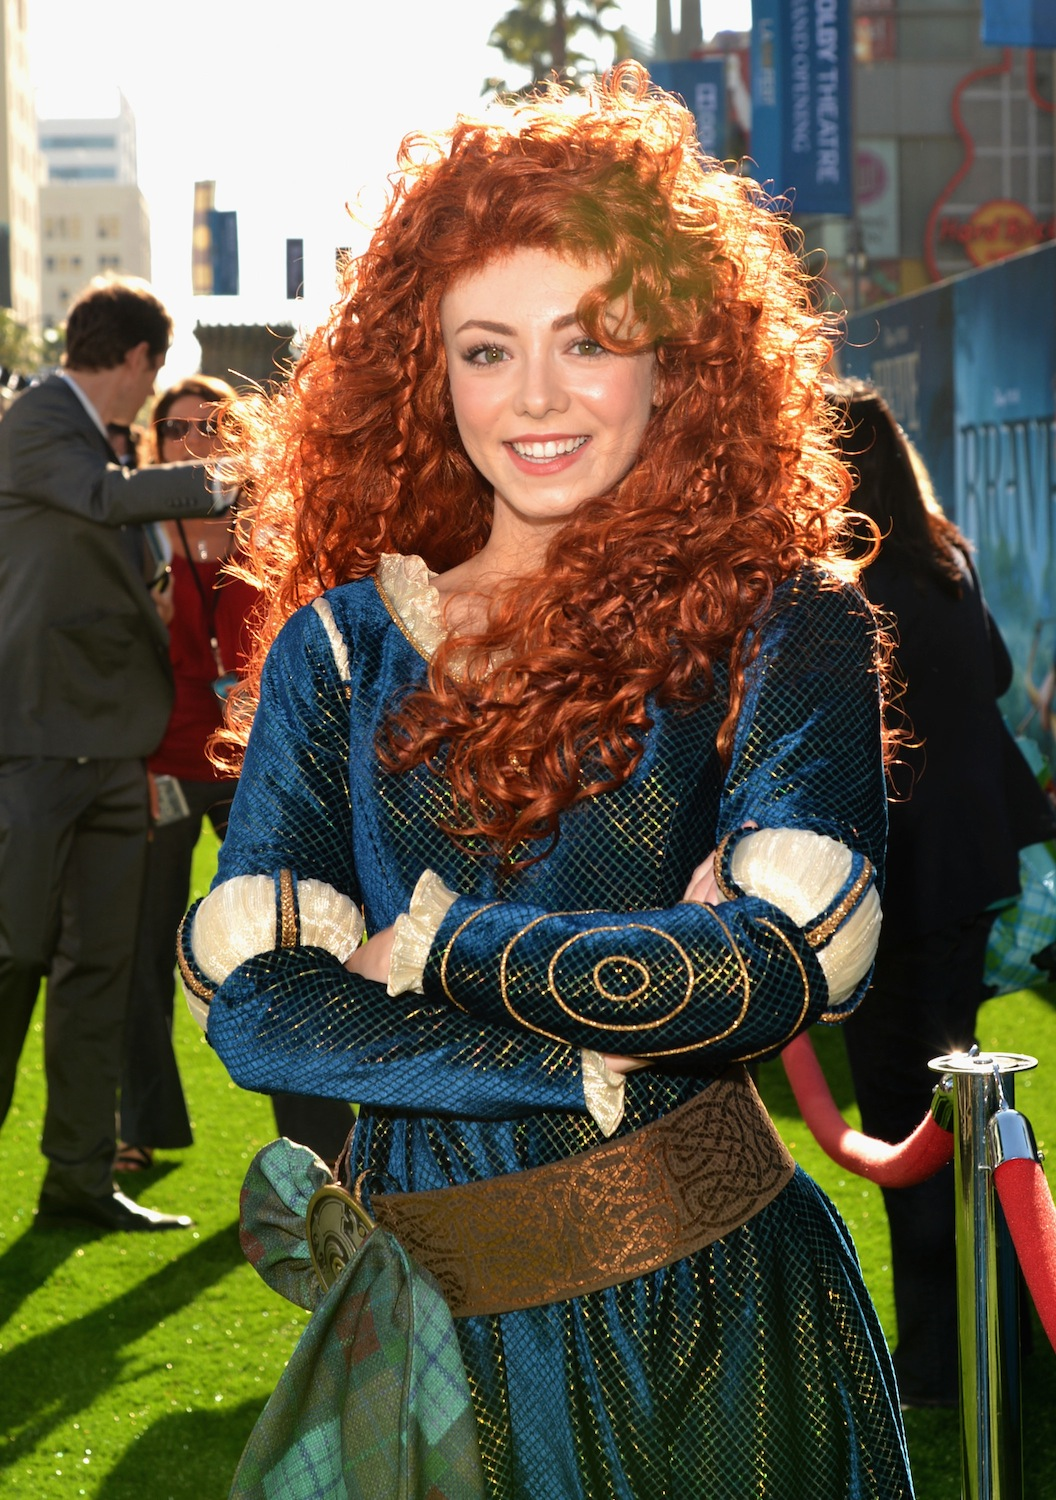 This is a photo of Obsessed Pictures of Merida From Brave